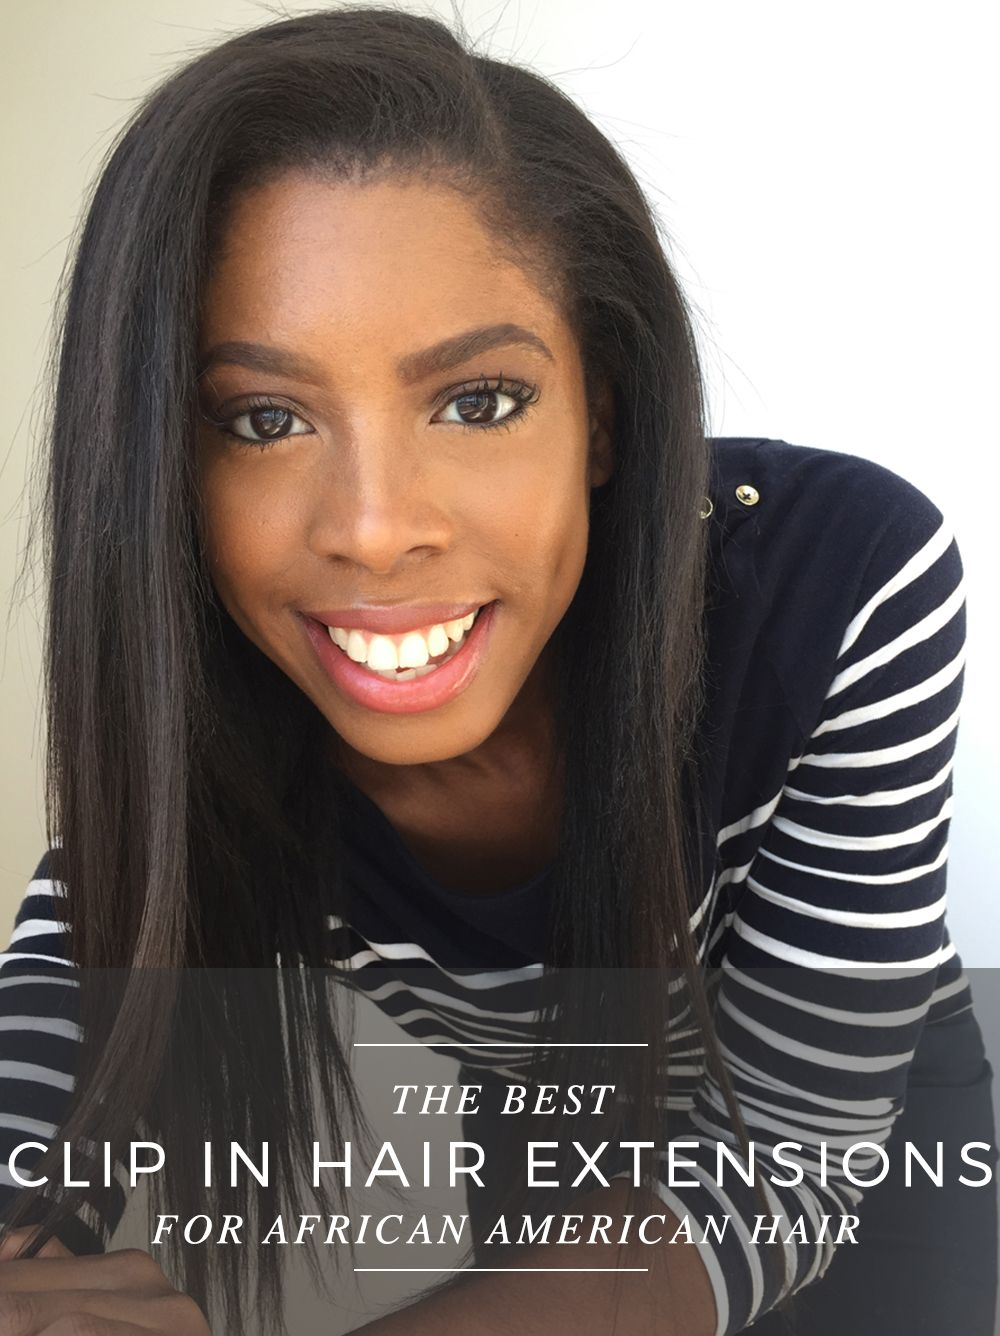 Best Clip In Hair Extensions For African American Hair Tangled